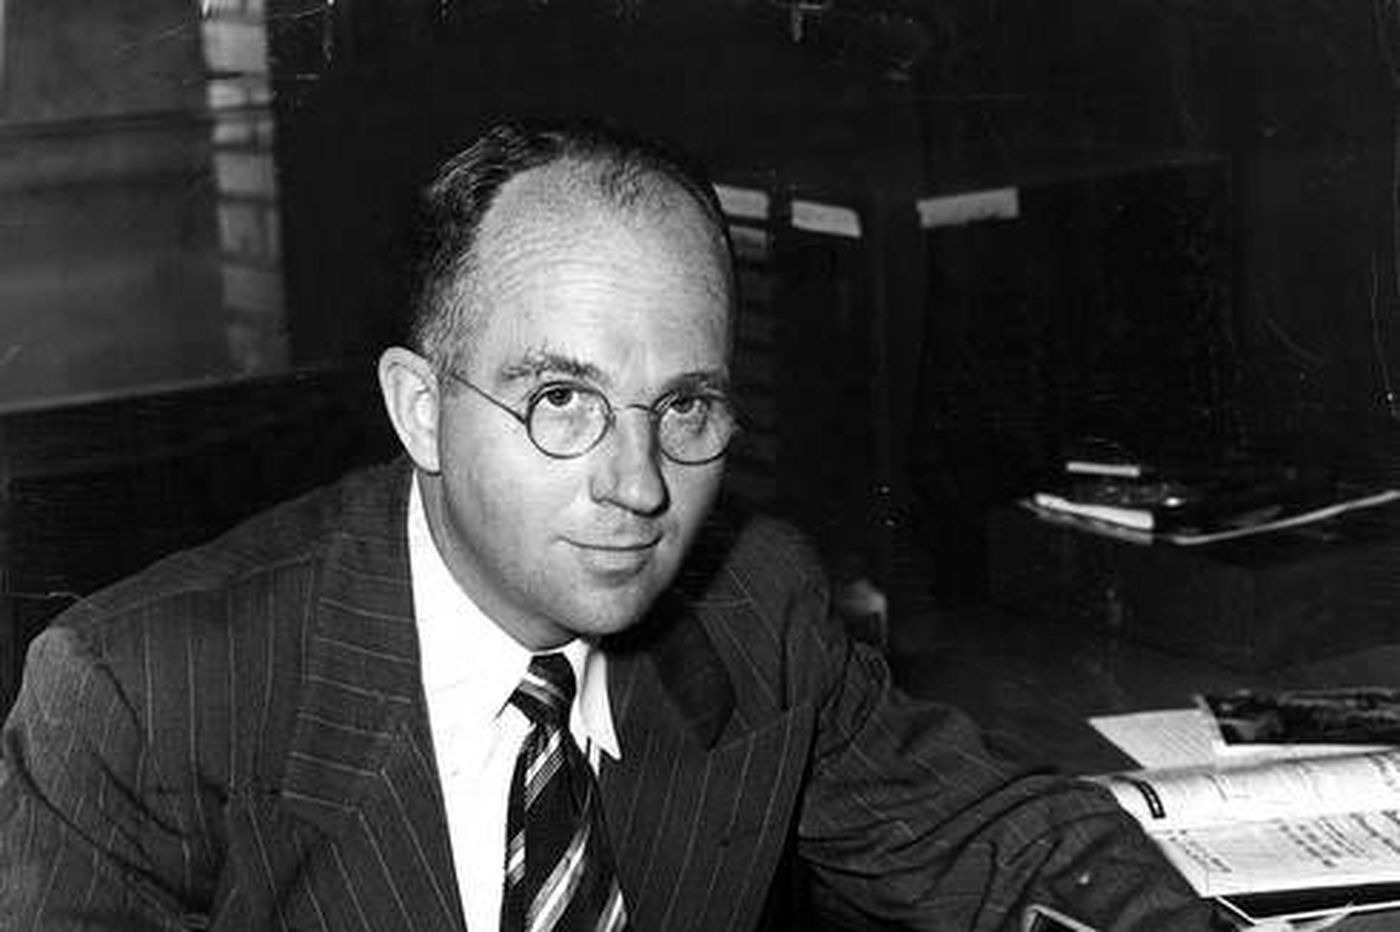 Newly discovered James Michener essay about growing up in Bucks County is being published for the first time